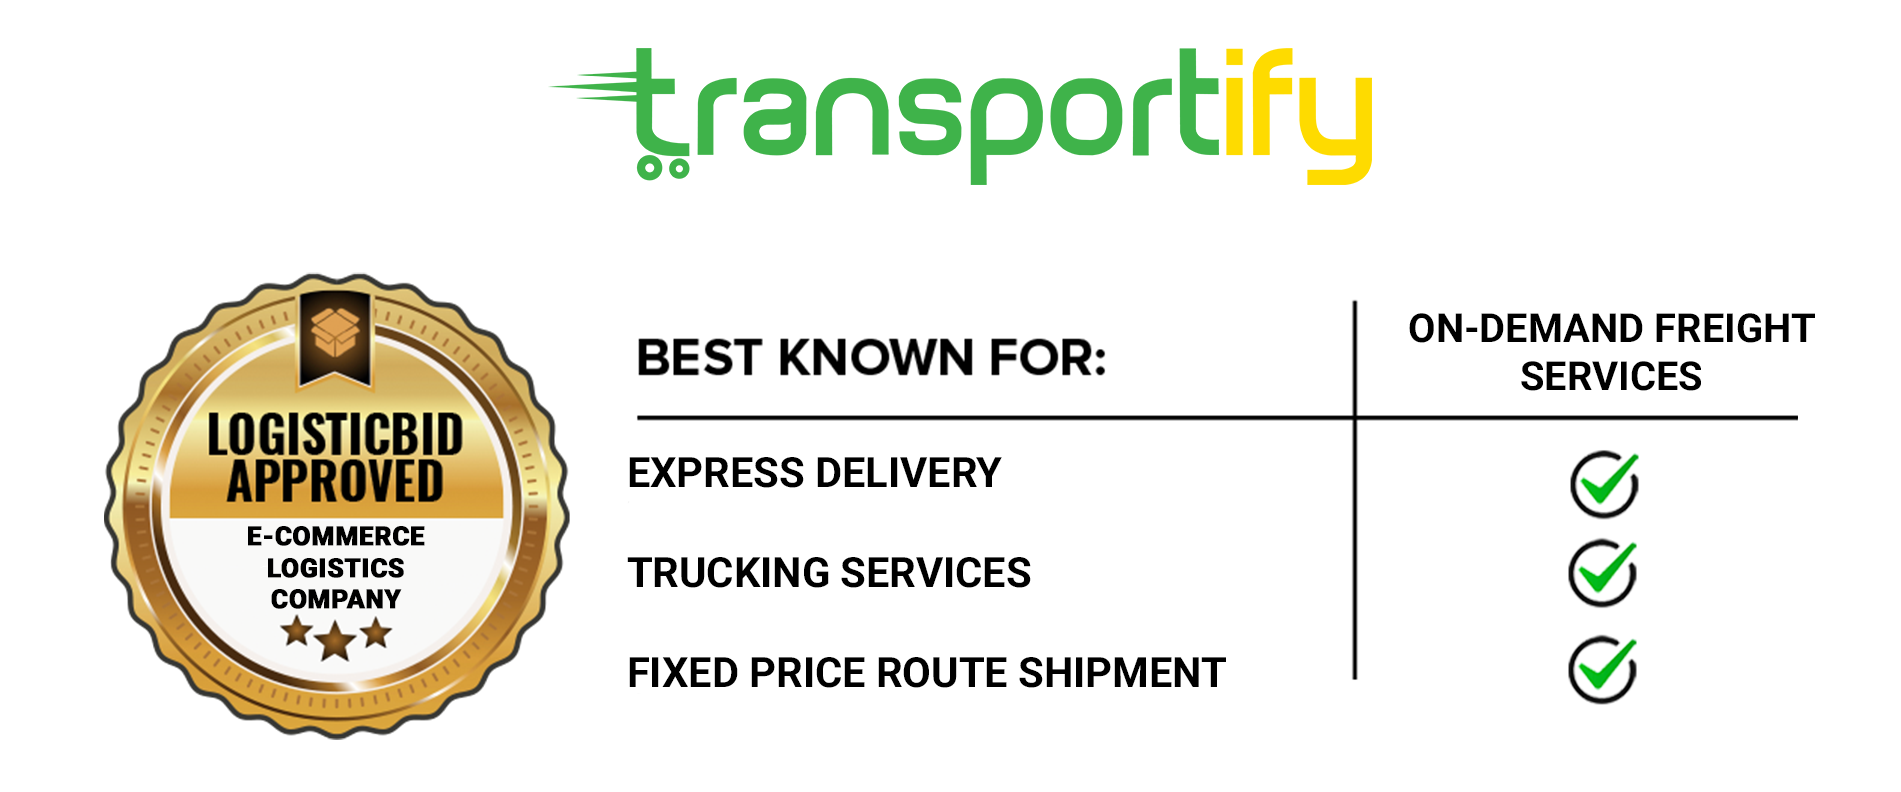 Trucking Services of Leading E-commerce Logistics Company - Transportify